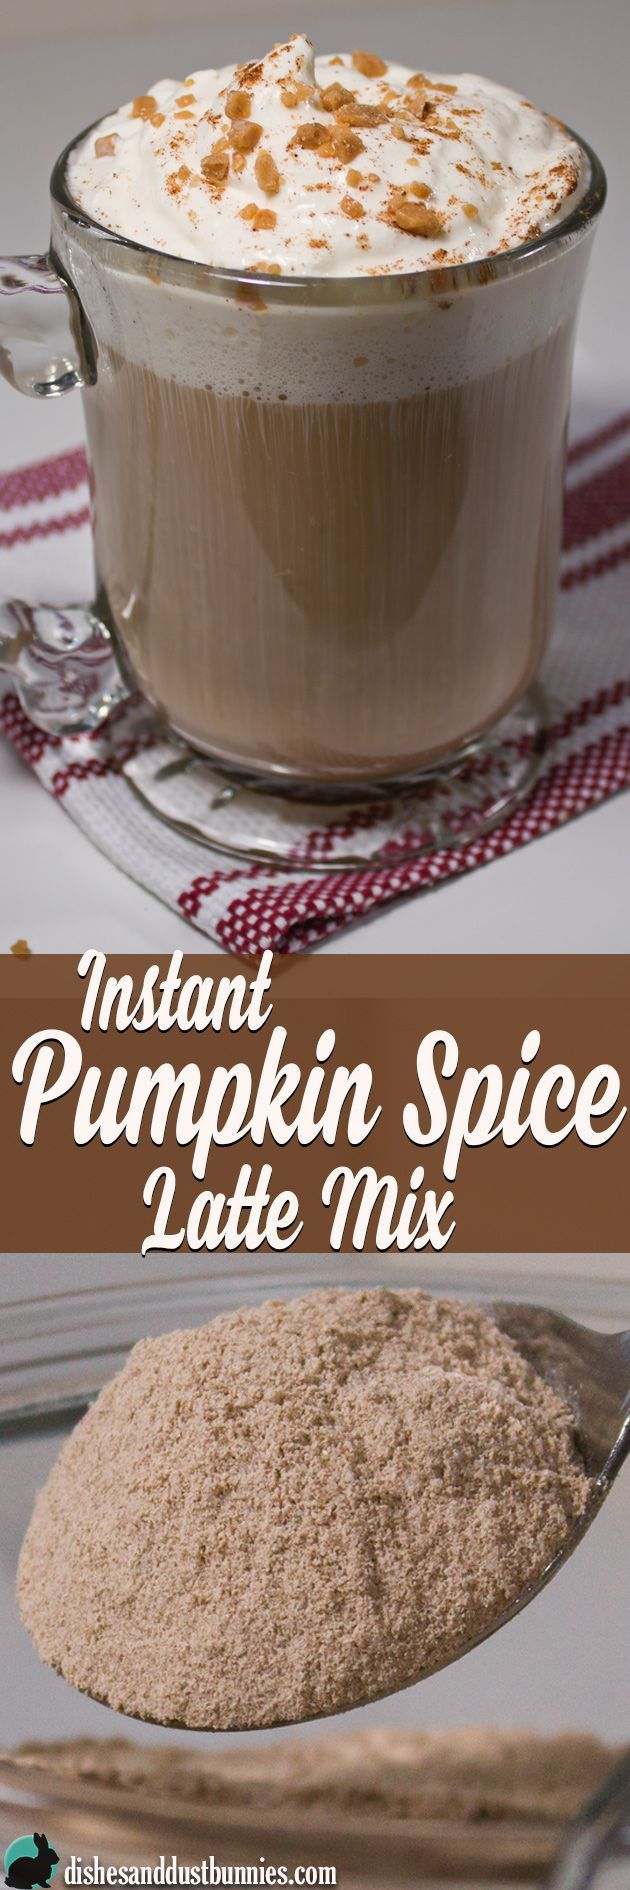 Homemade DIY Instant Pumpkin Spice Latte Mix from http://dishesanddustbunnies.com